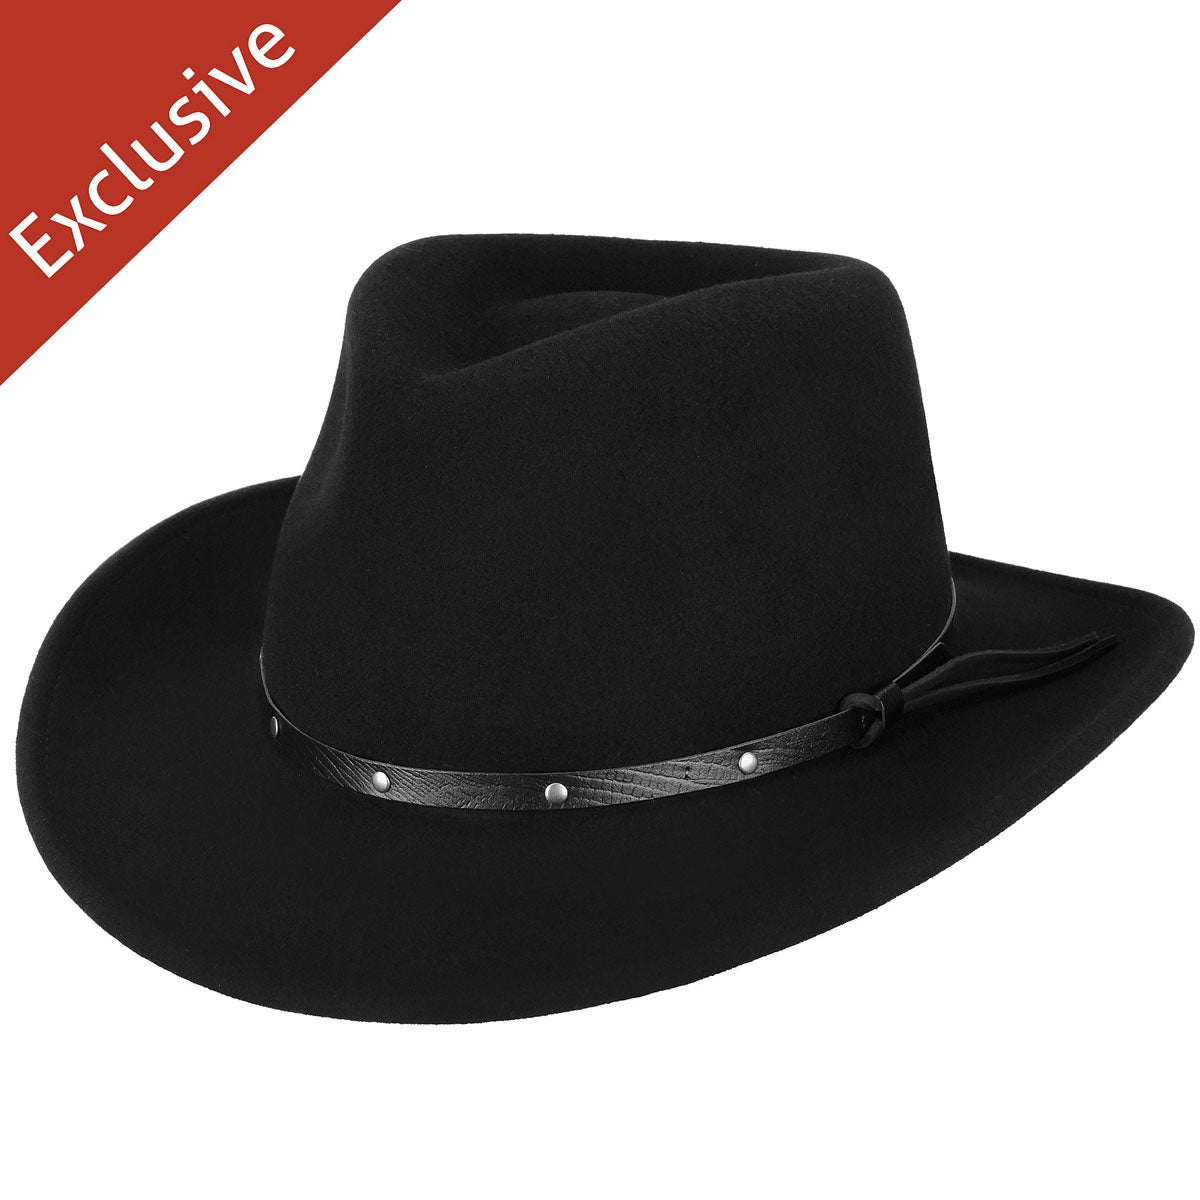 Hats.com Gallivanter Outback Hat - Exclusive in Black